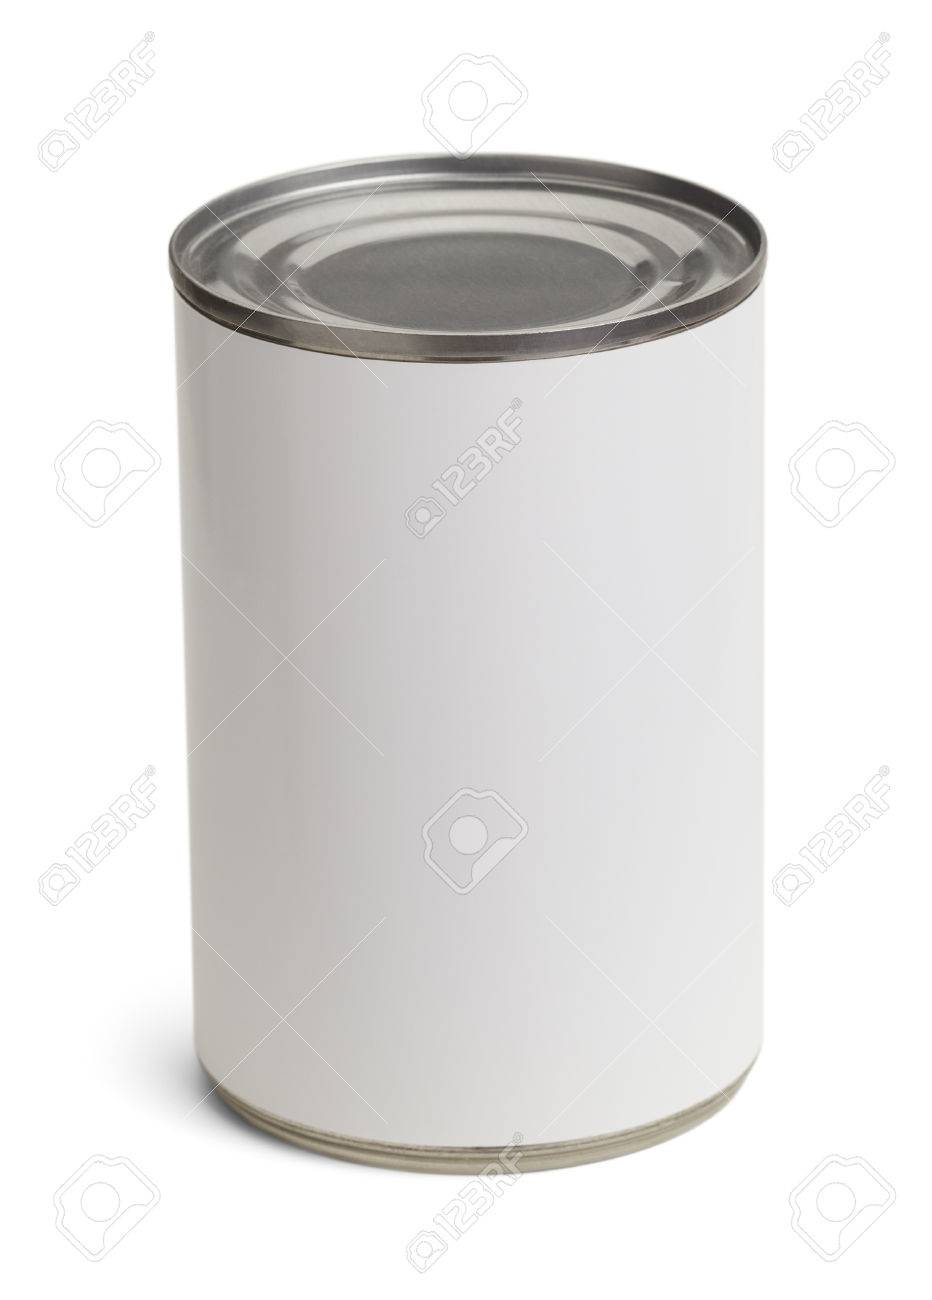 Generic Tin Can with Copy Space Isolated on a White Background. - 38386461